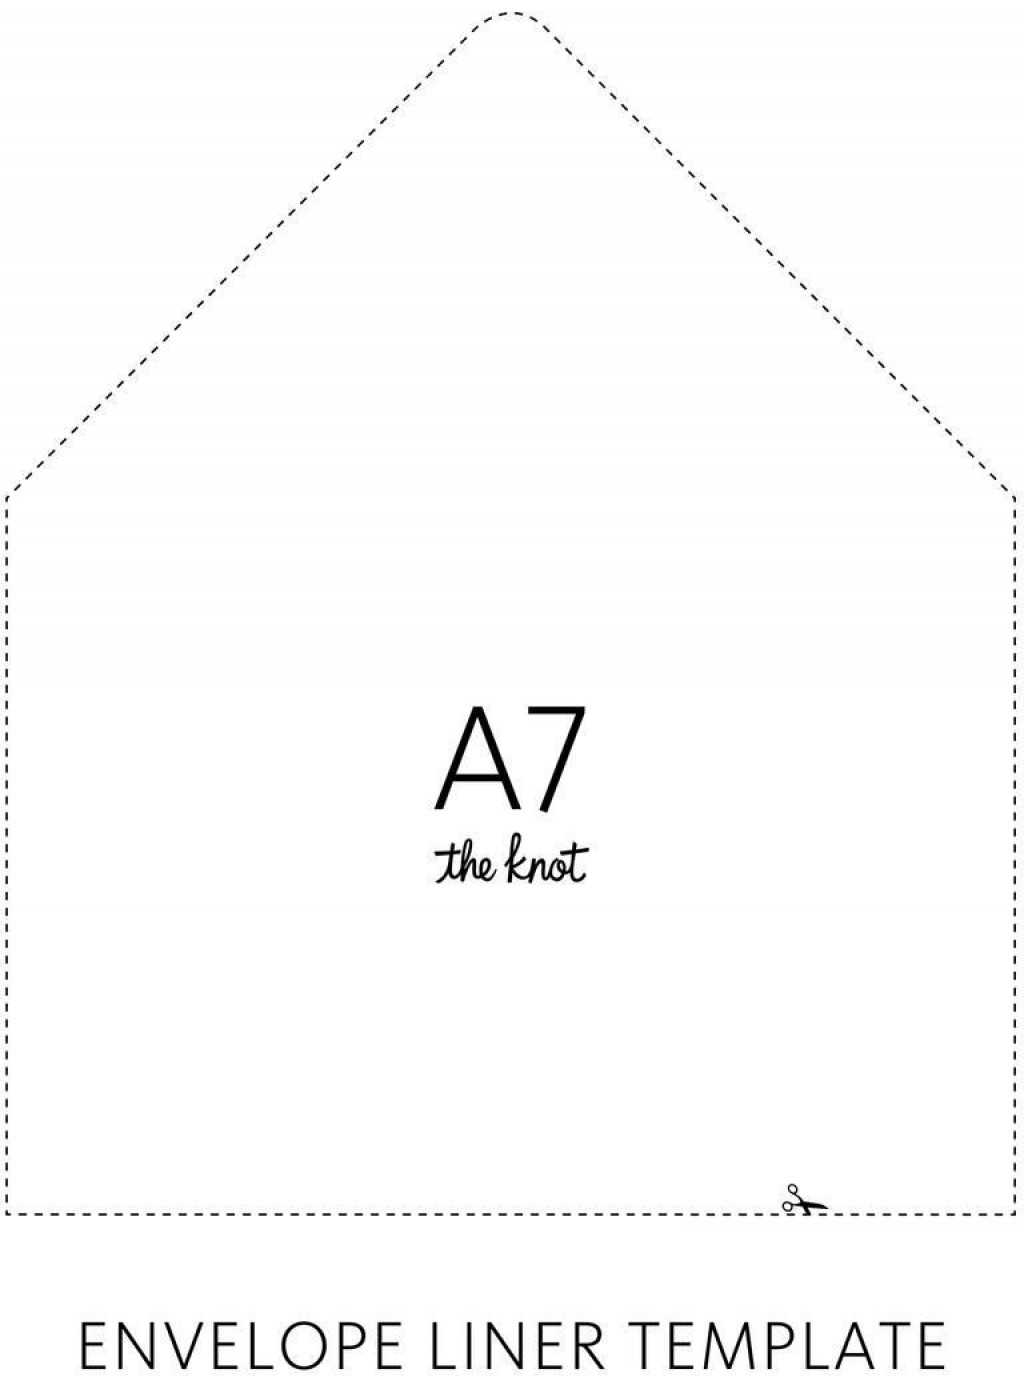 001 Remarkable A7 Square Flap Envelope Liner Template Highest Clarity Large